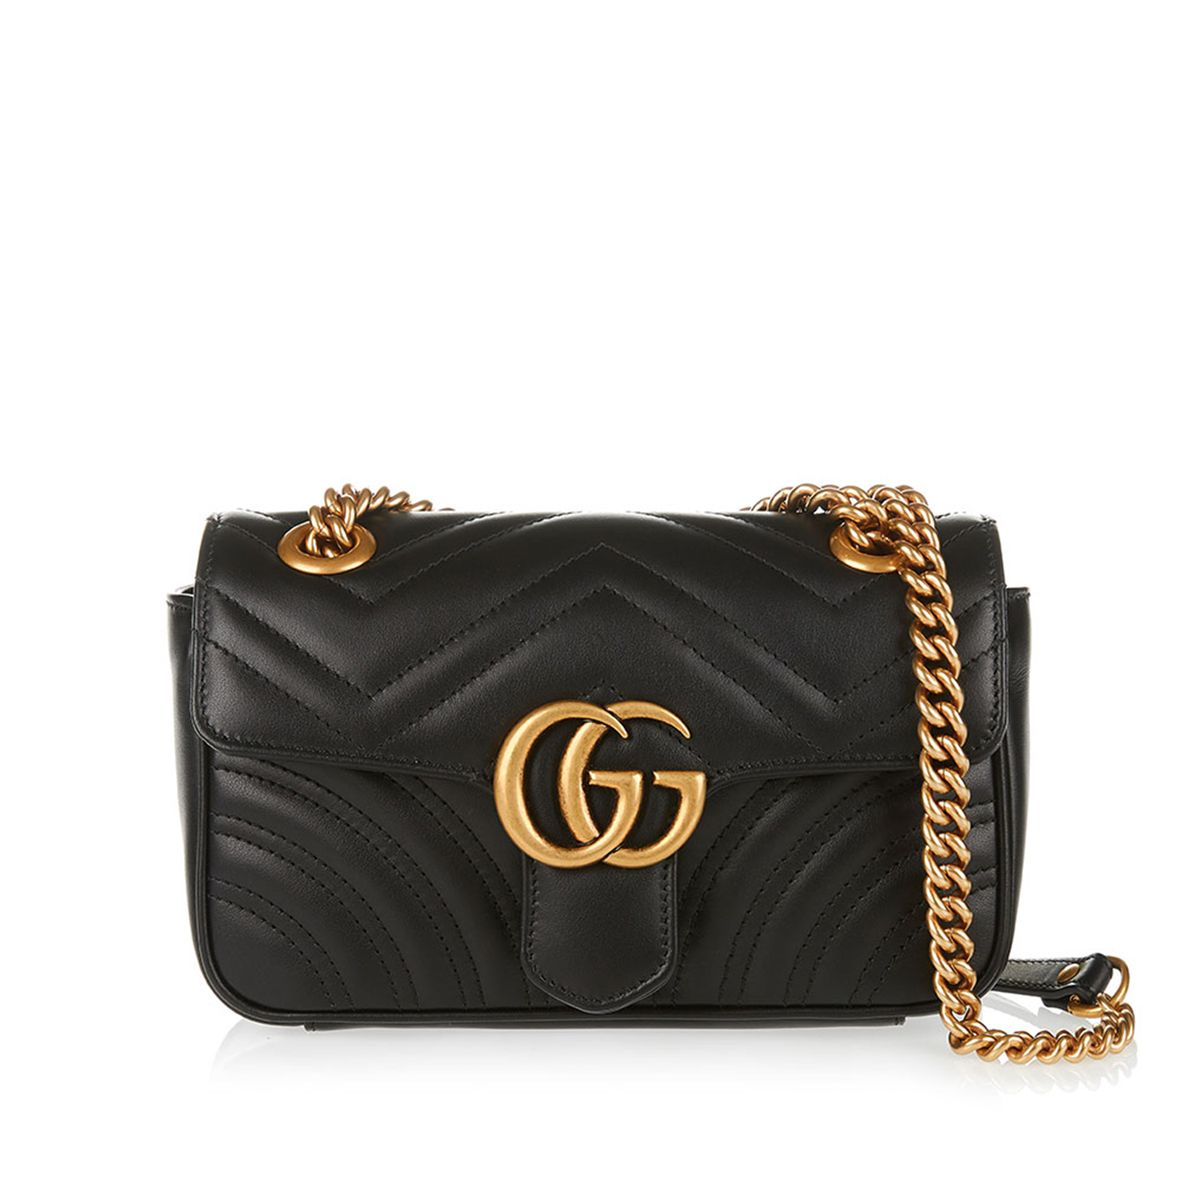 ee54dae37 Shop this GG Marmont Mini Shoulder Bag from the latest collection of Gucci  womenswear online at LUISAWORLD.COM . All the fashion trends are here!